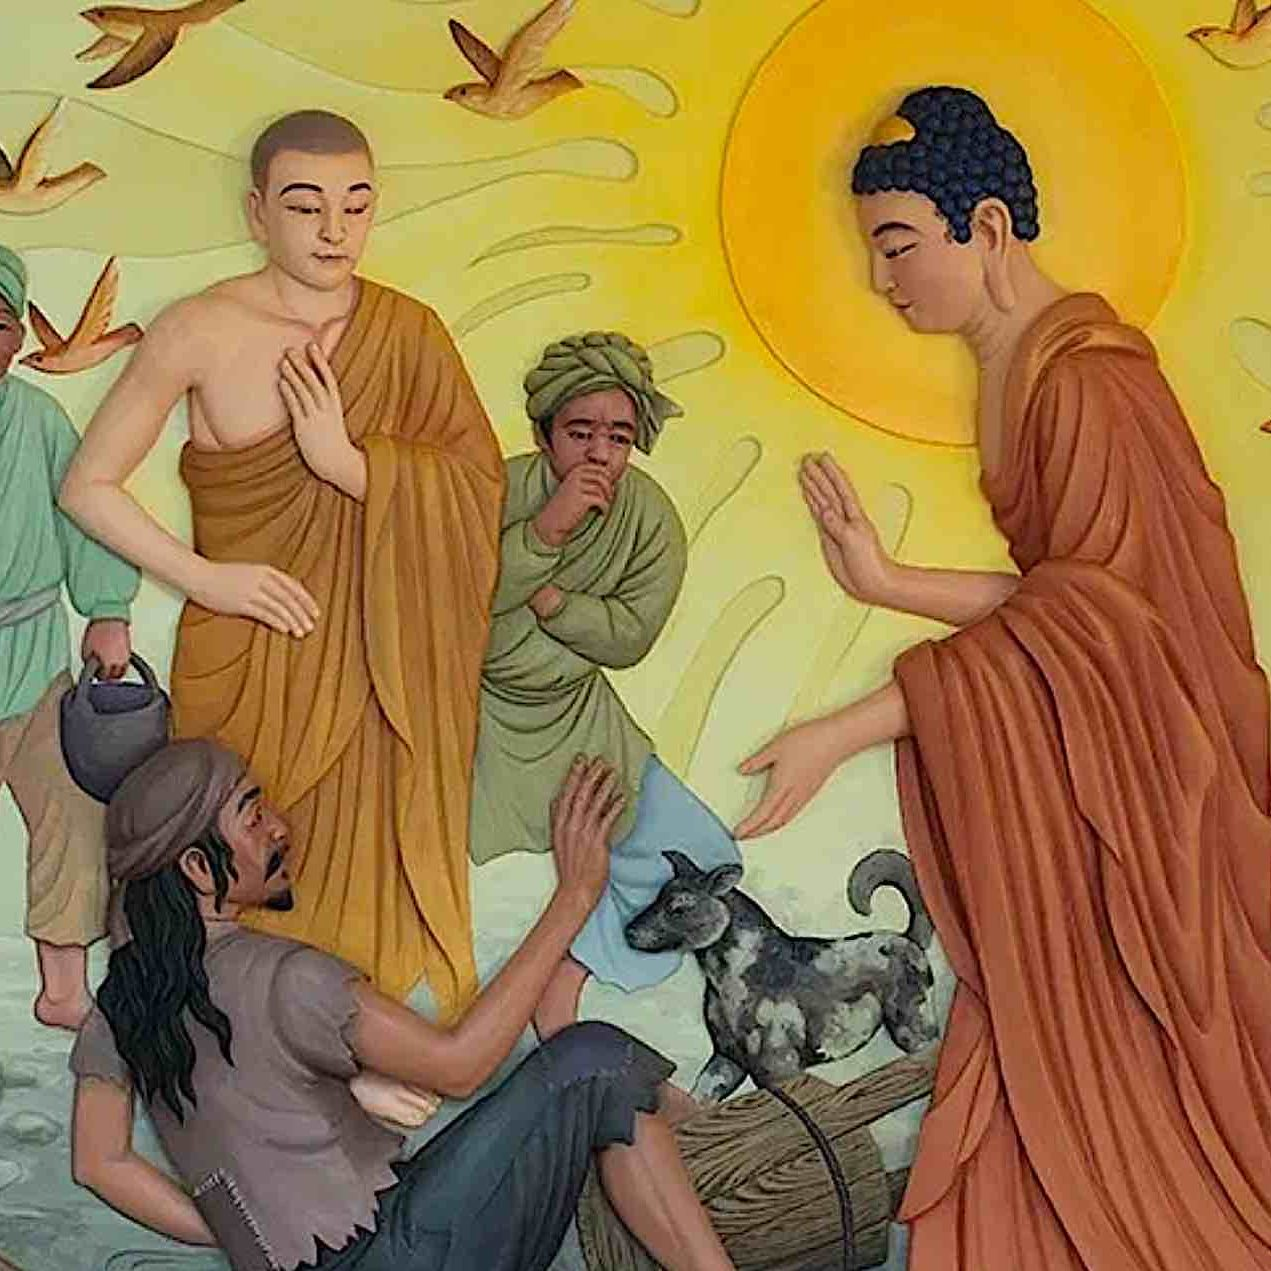 """Buddha comes across the """"untouchable"""" carrying excrement. Buddha treats the """"untouchable"""" as an equal, without pride, and asks him to become one of his monks."""